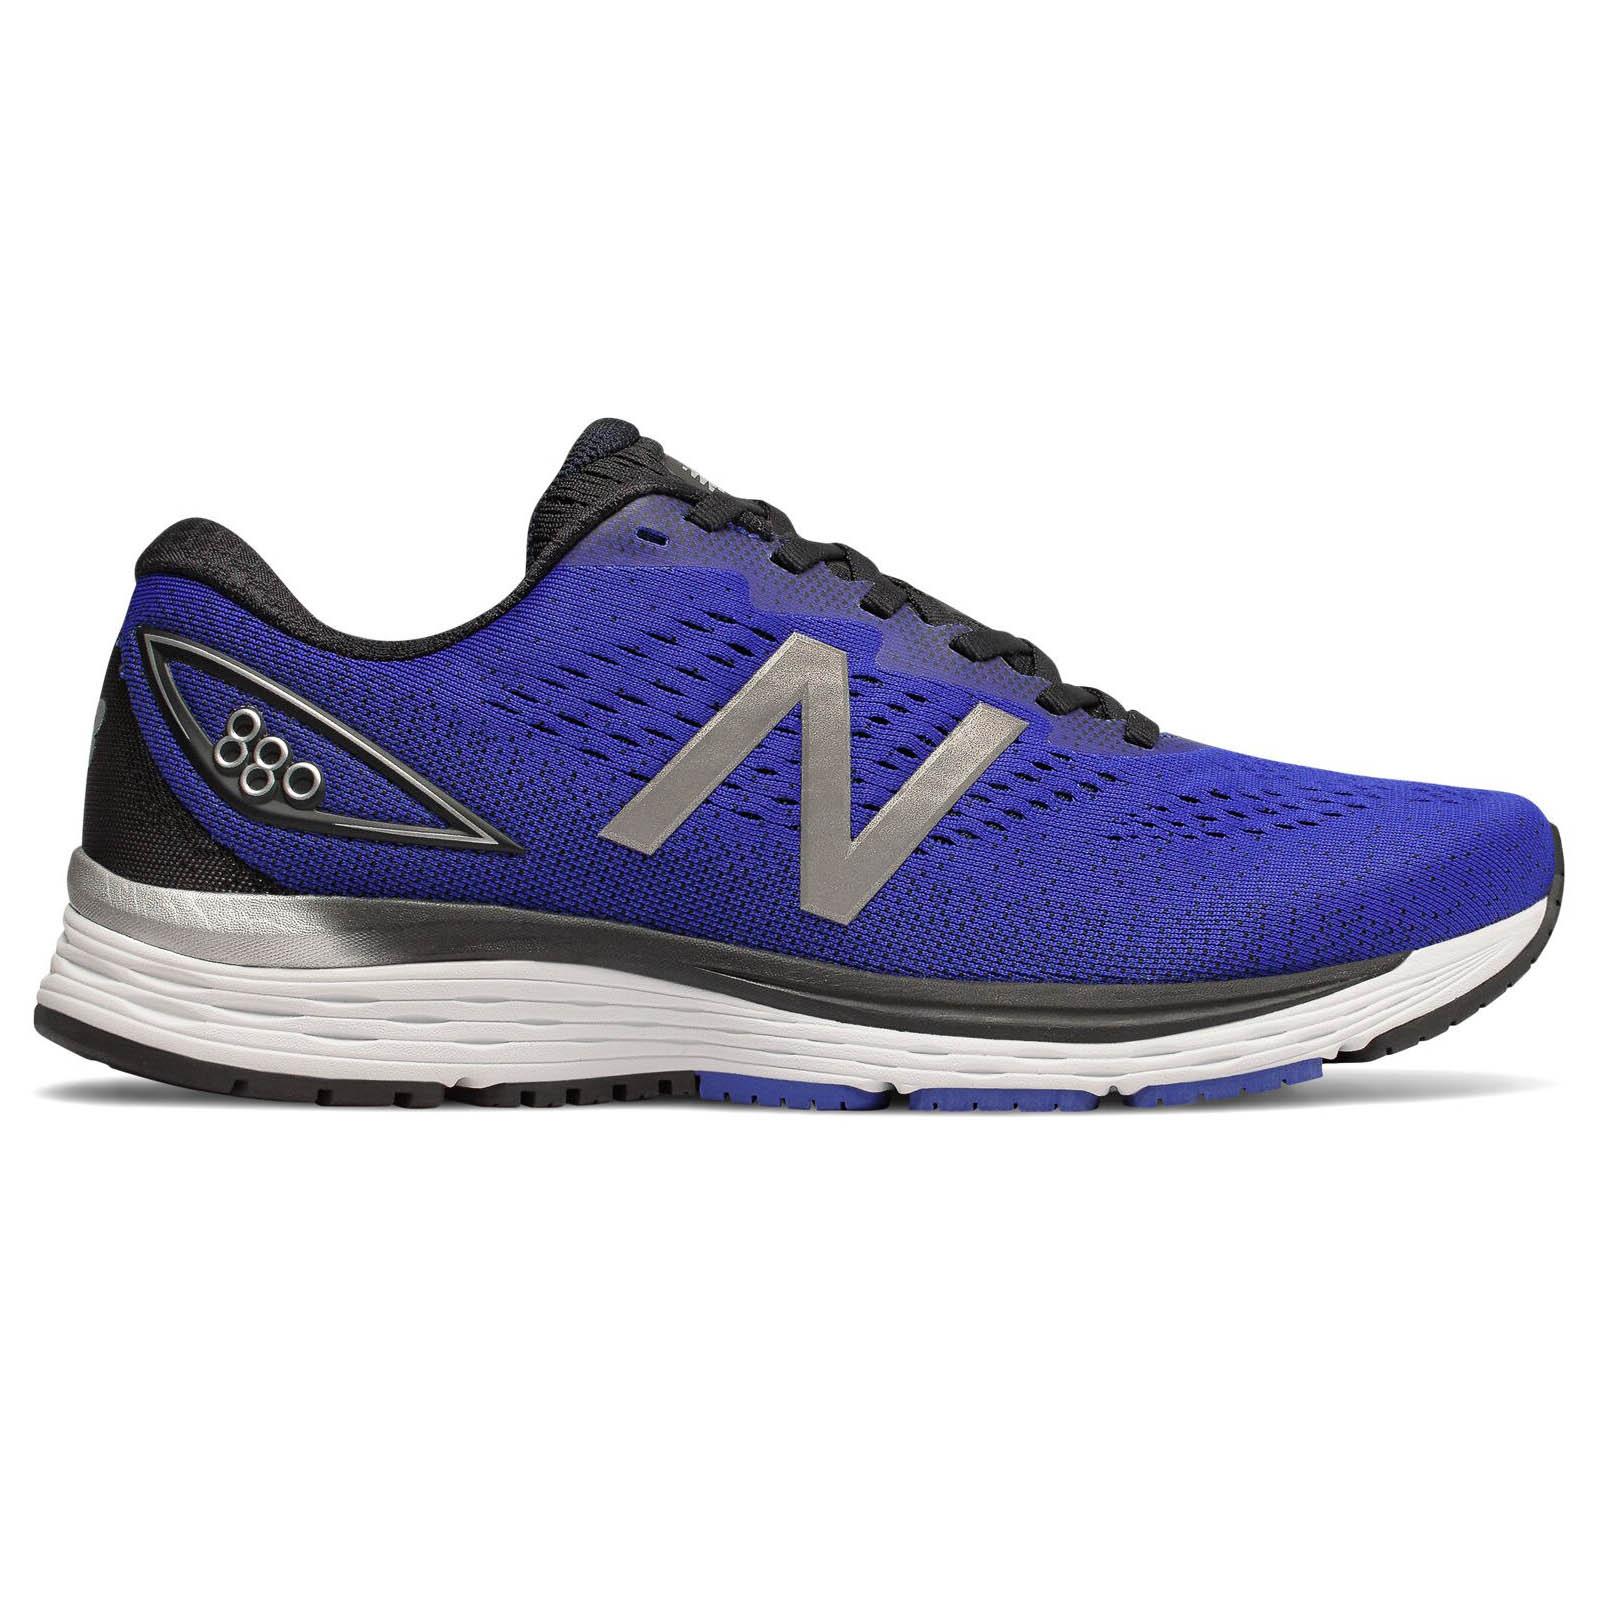 NEW BALANCE 880 BRIGHT BLUE